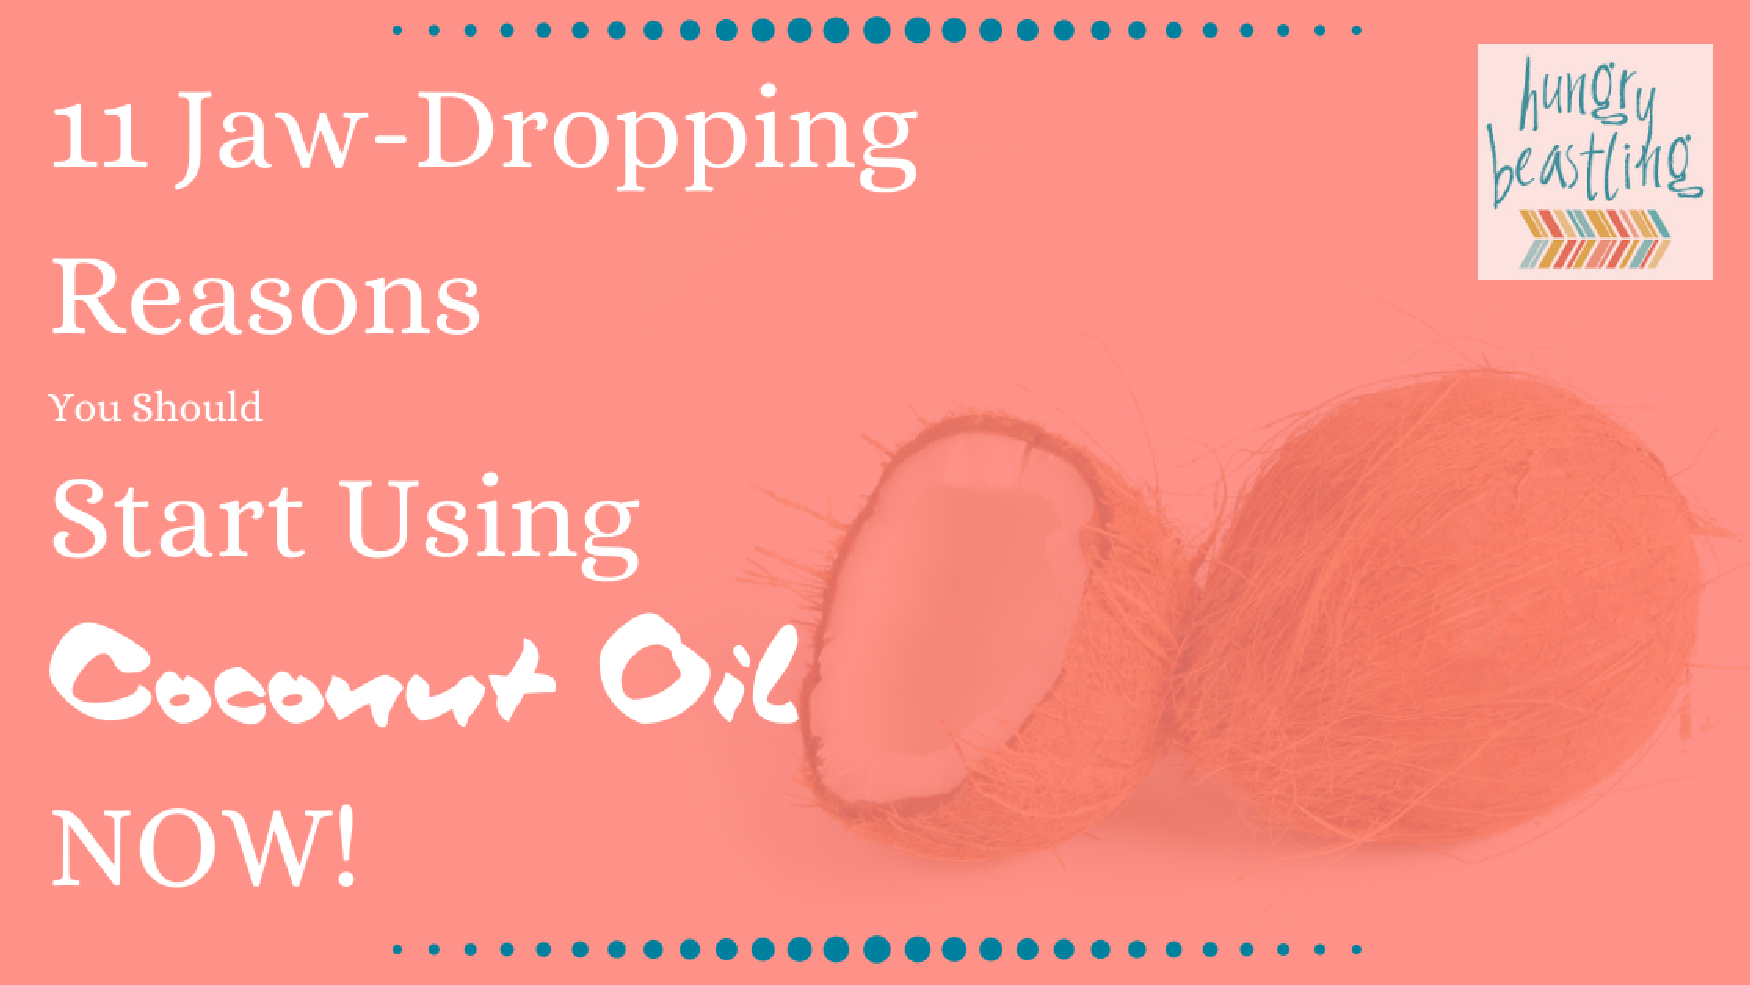 11 Jaw-Dropping Reasons You Should Start Using Coconut Oil Now - Coconut oil is notorious for being about 90% saturated fat. However, we're now finding out not all saturated fats are bad! In fact, the benefits are amazing!| Hungry Beastling